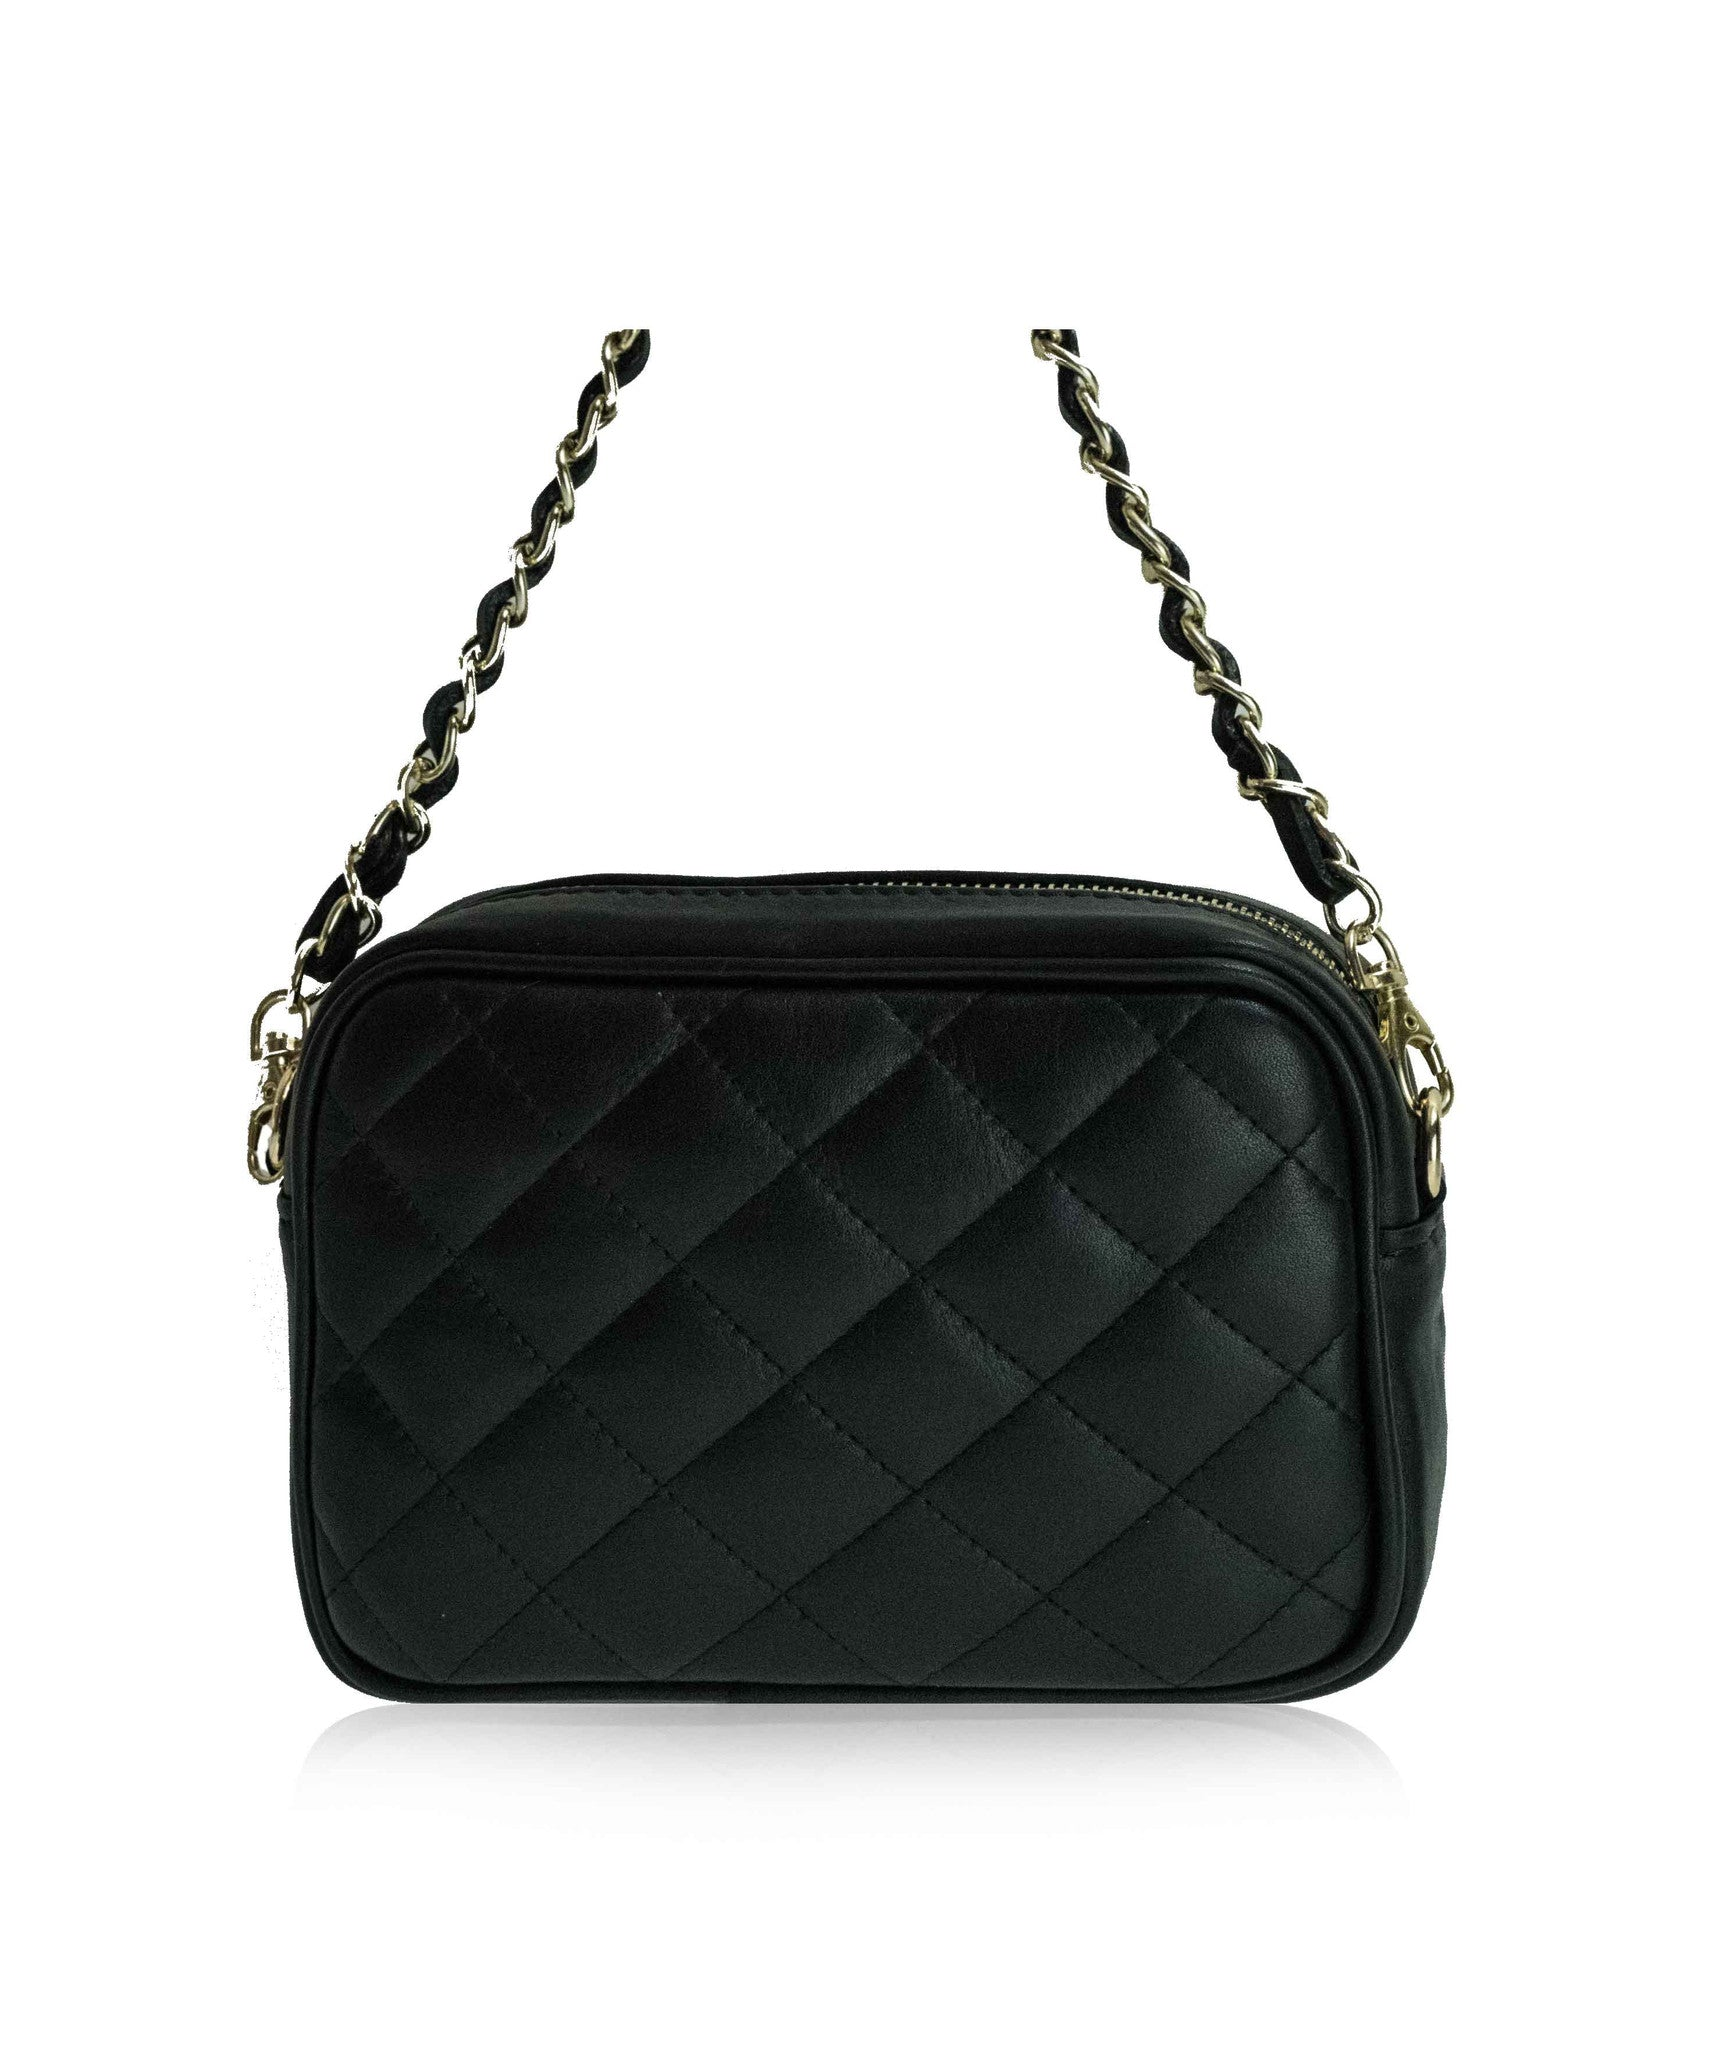 web leather marmont camera black gg product small chevron bag strap quilt top with gucci handbags quilted handle